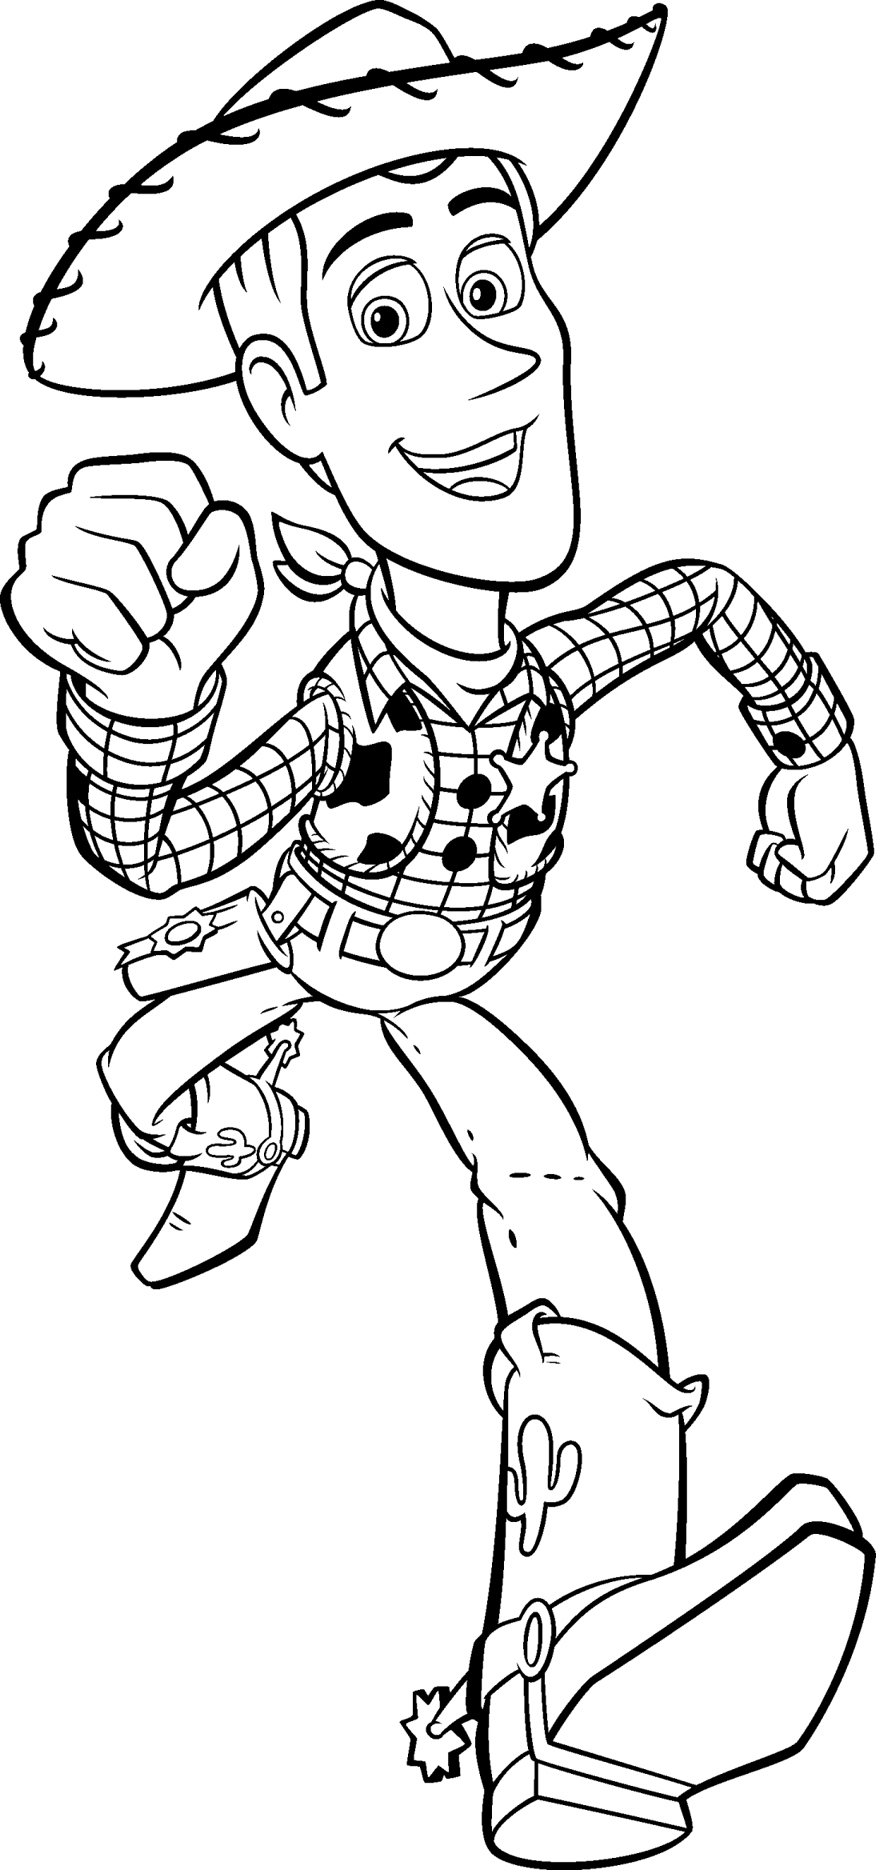 toy story coloring book free printable toy story coloring pages for kids story toy coloring book